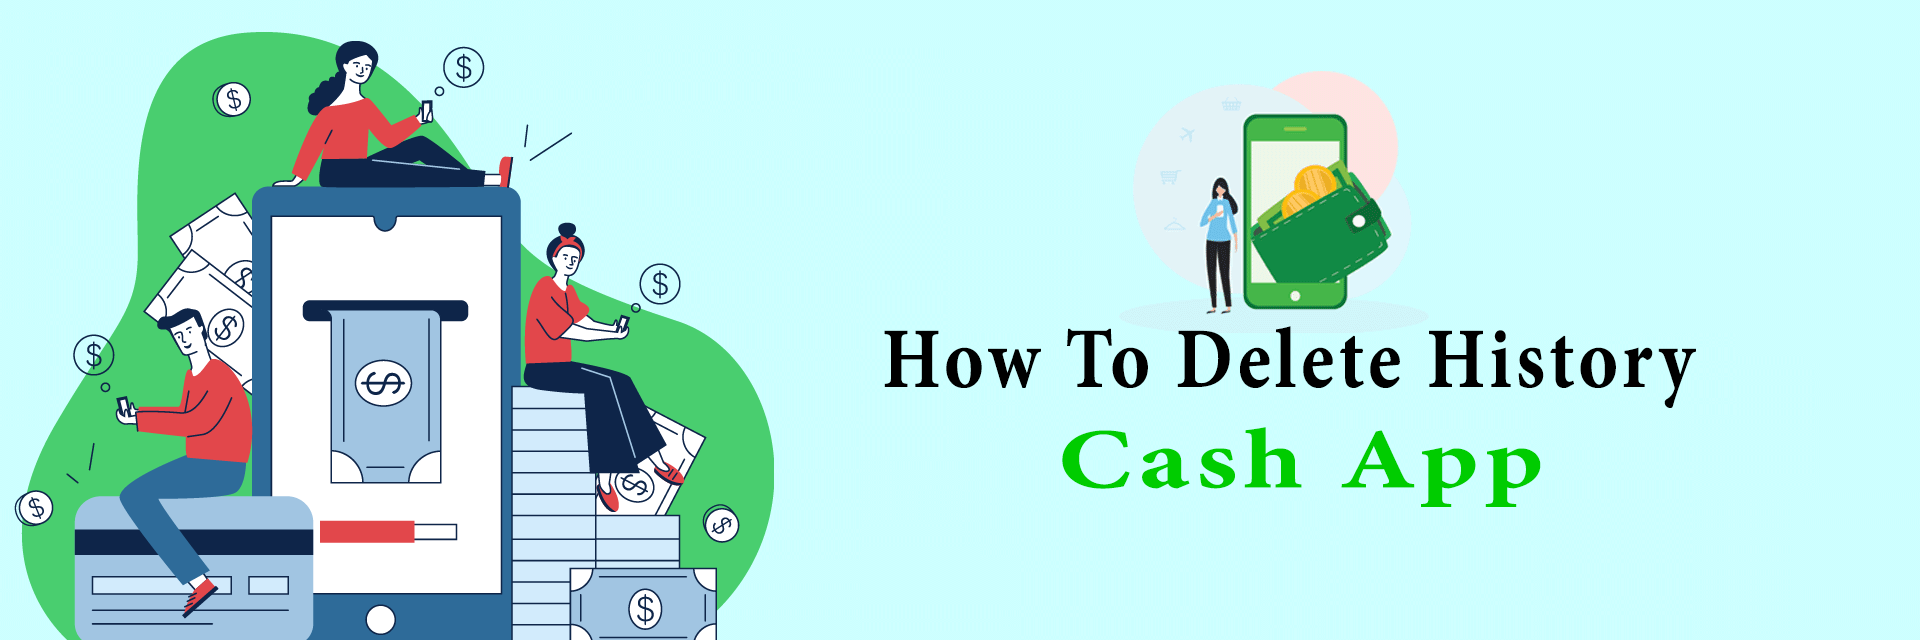 How To Delete Cash App History